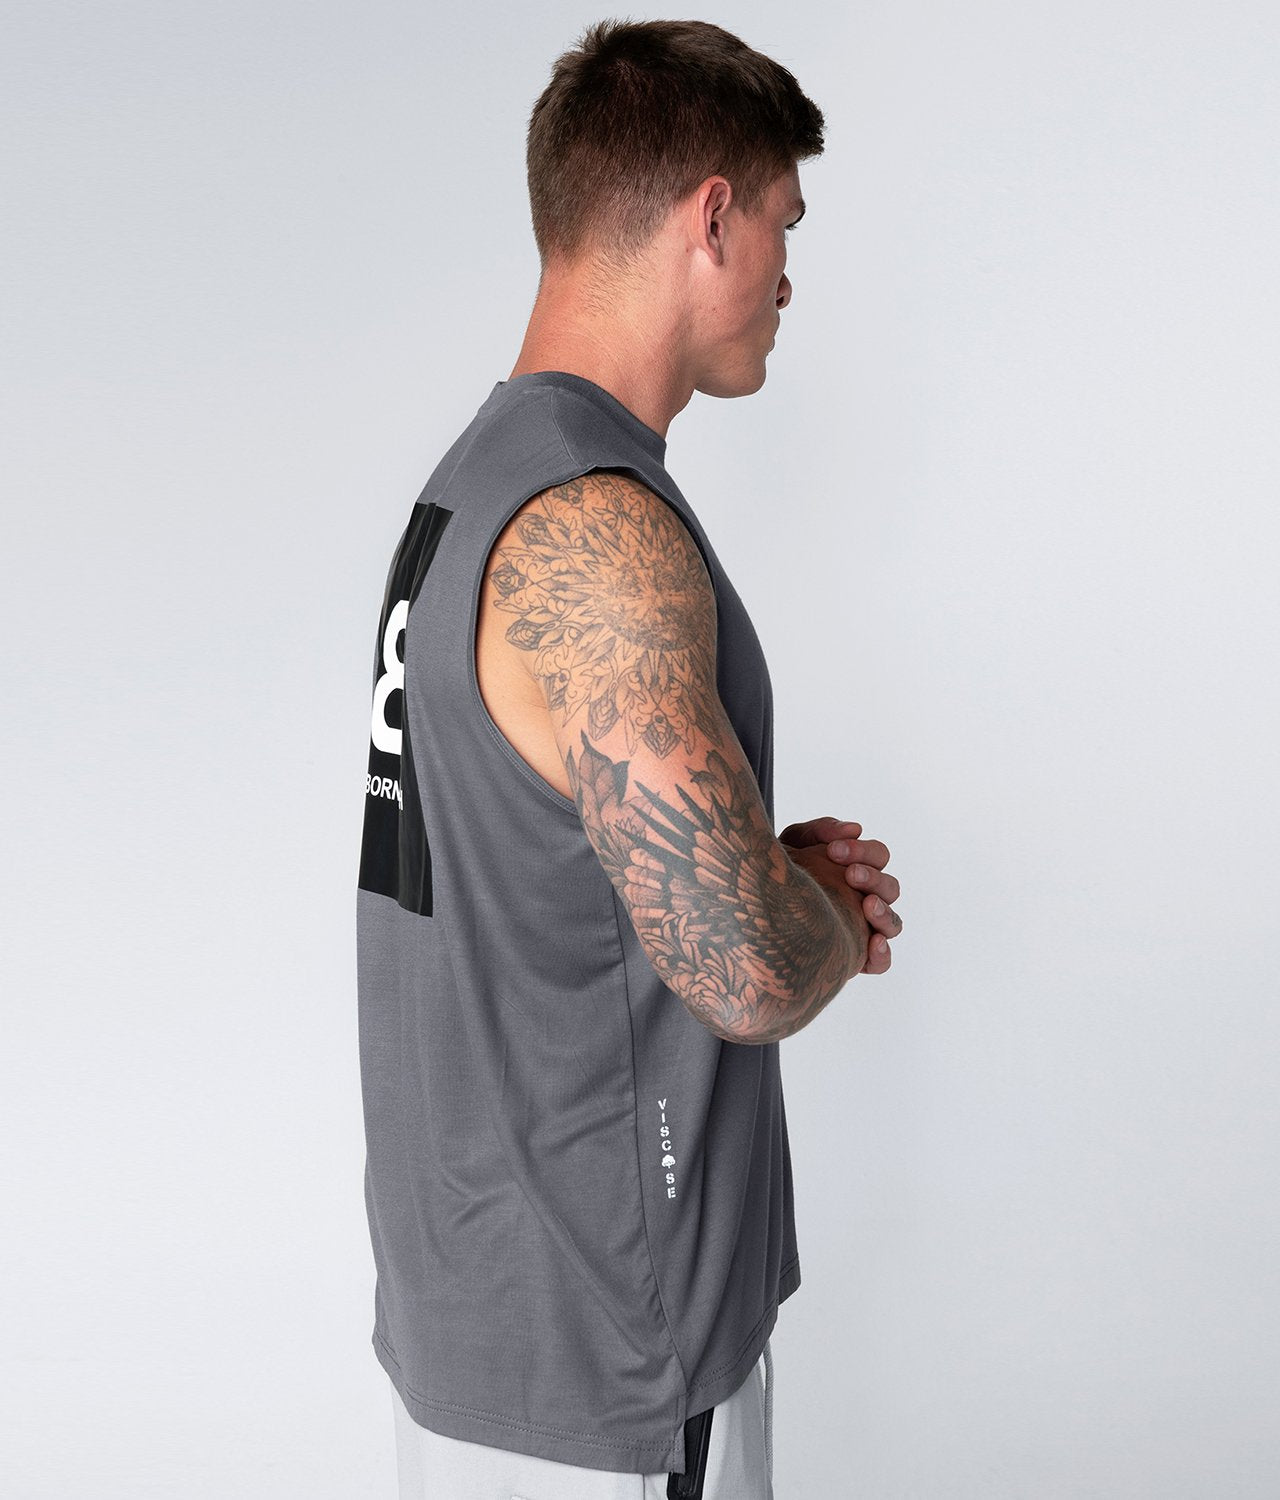 Born Tough United Kingdom Gray Stretchable Sleeveless Gym Workout Shirt For Men